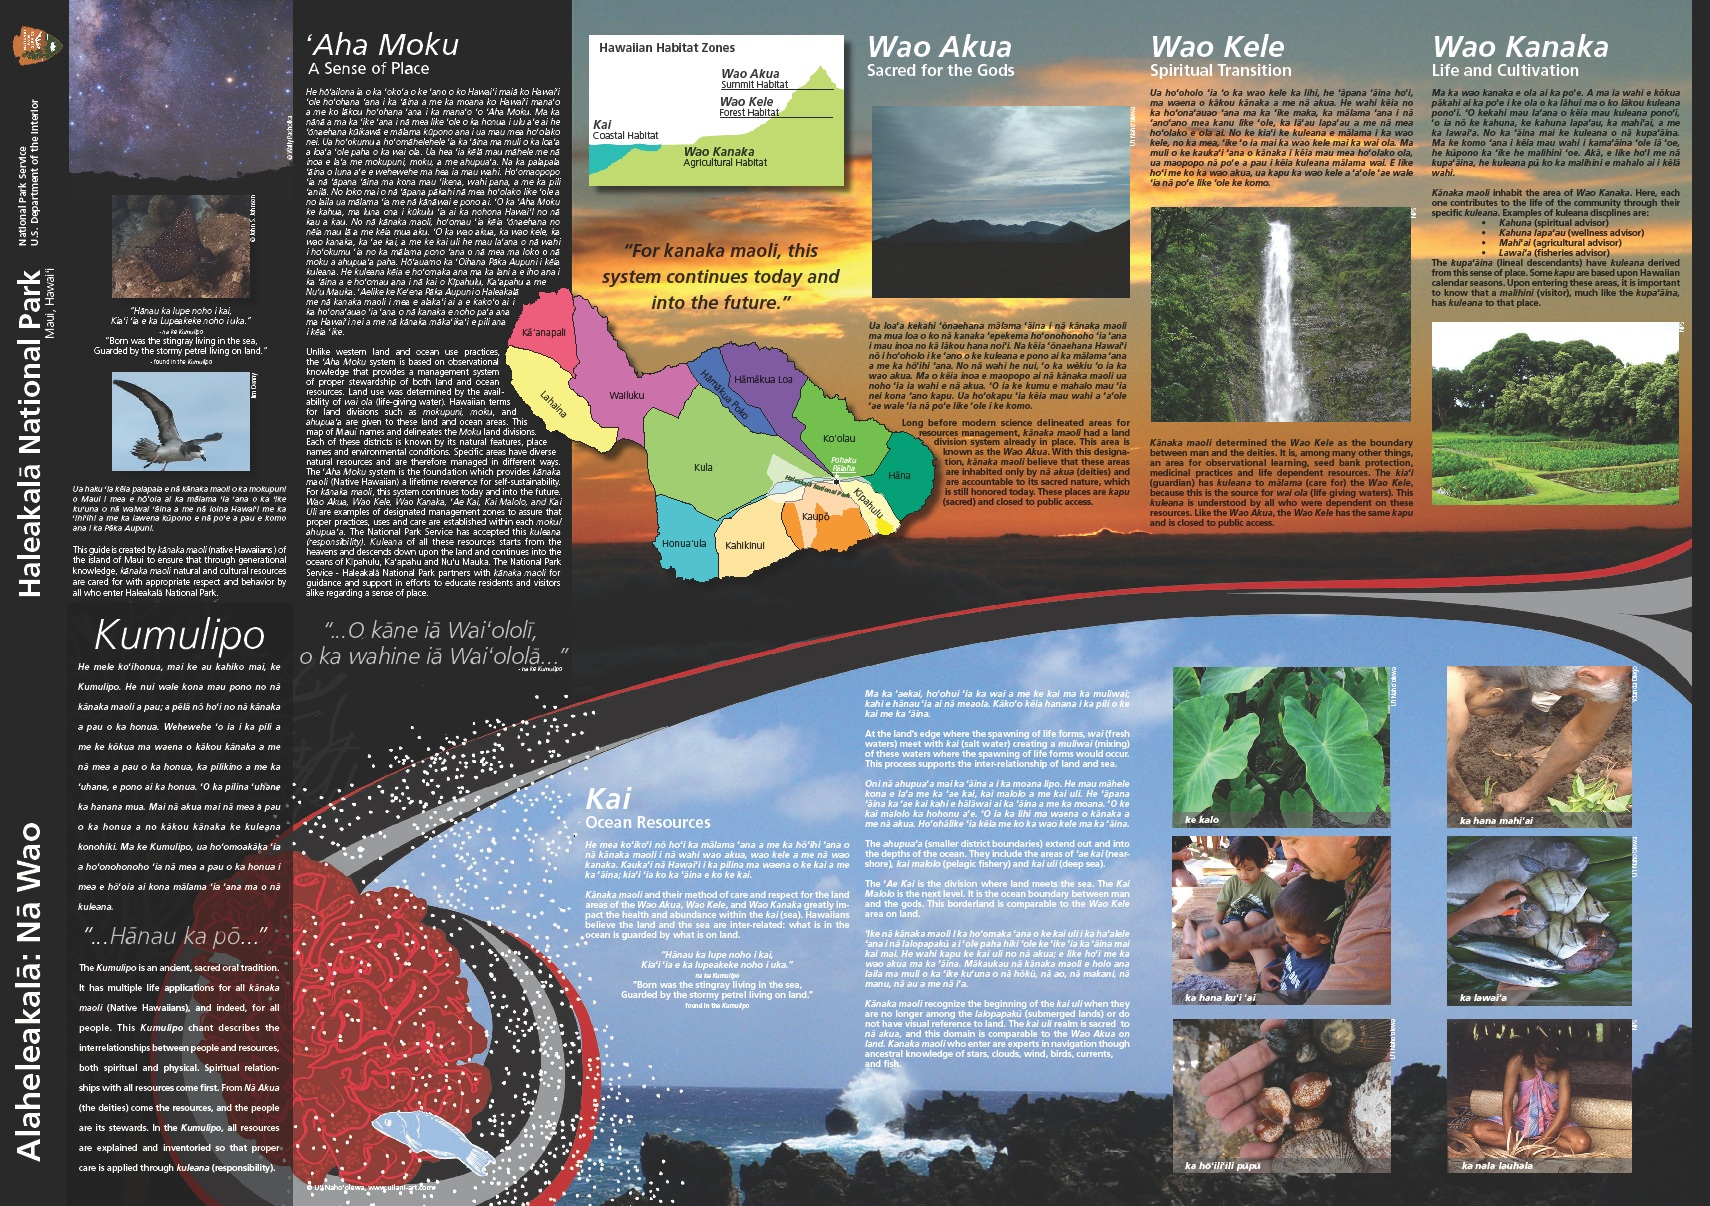 New Bilingual Brochure First In National Park System